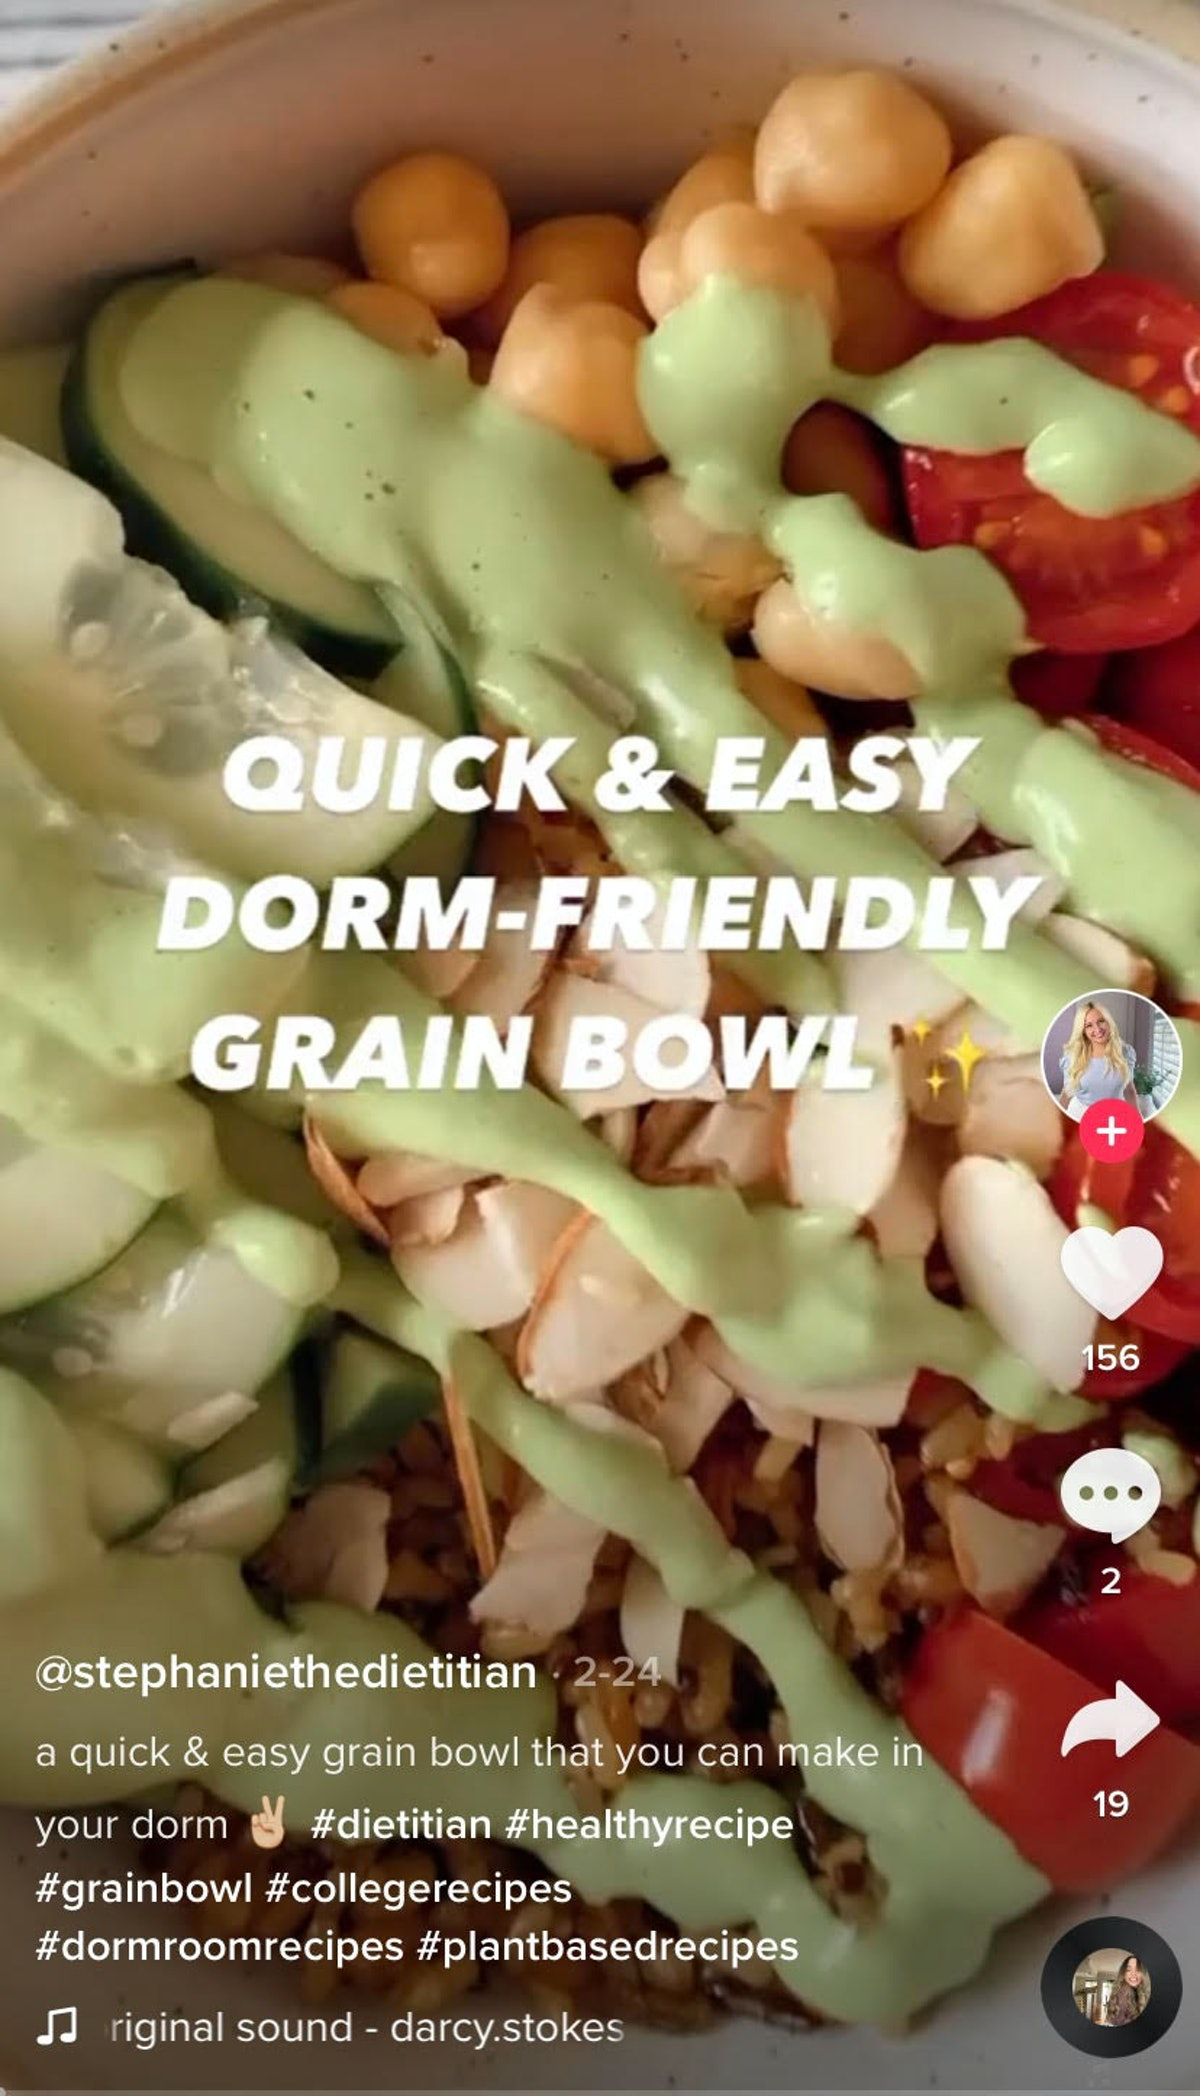 A woman makes a quick and easy dorm room-friendly gran bowl recipe on TikTok with cucumbers and toma...